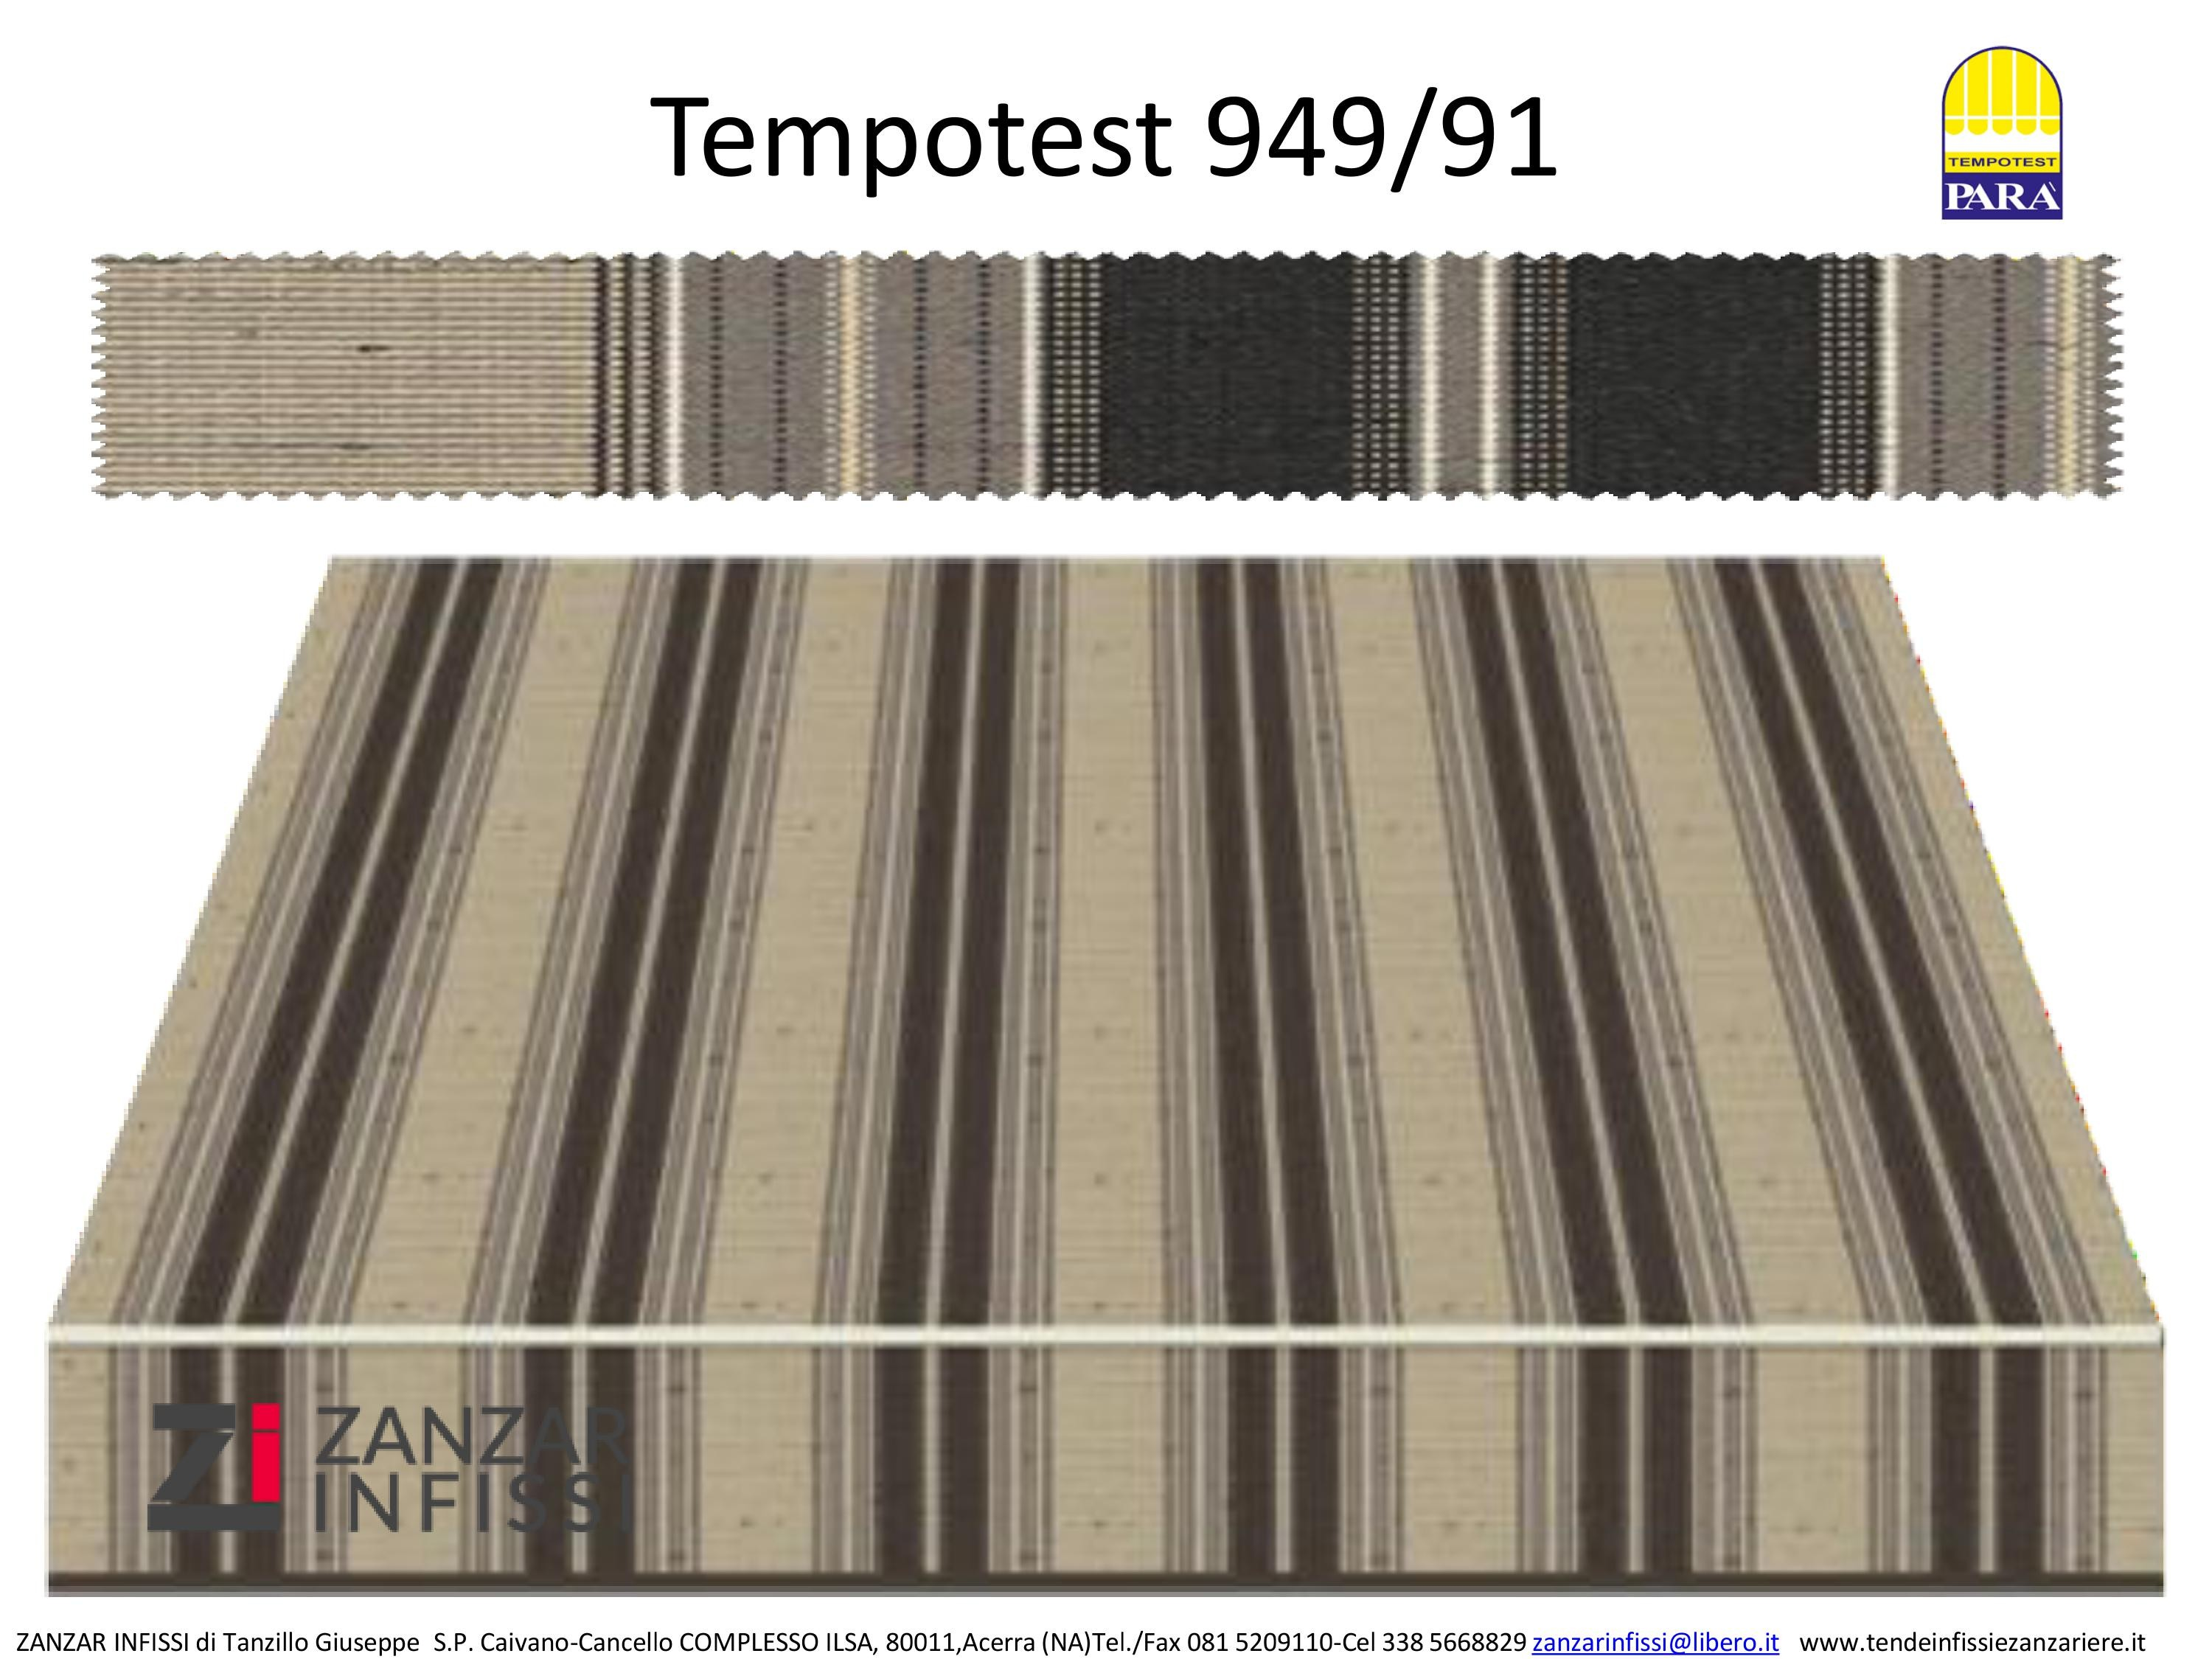 Tempotest 949/91